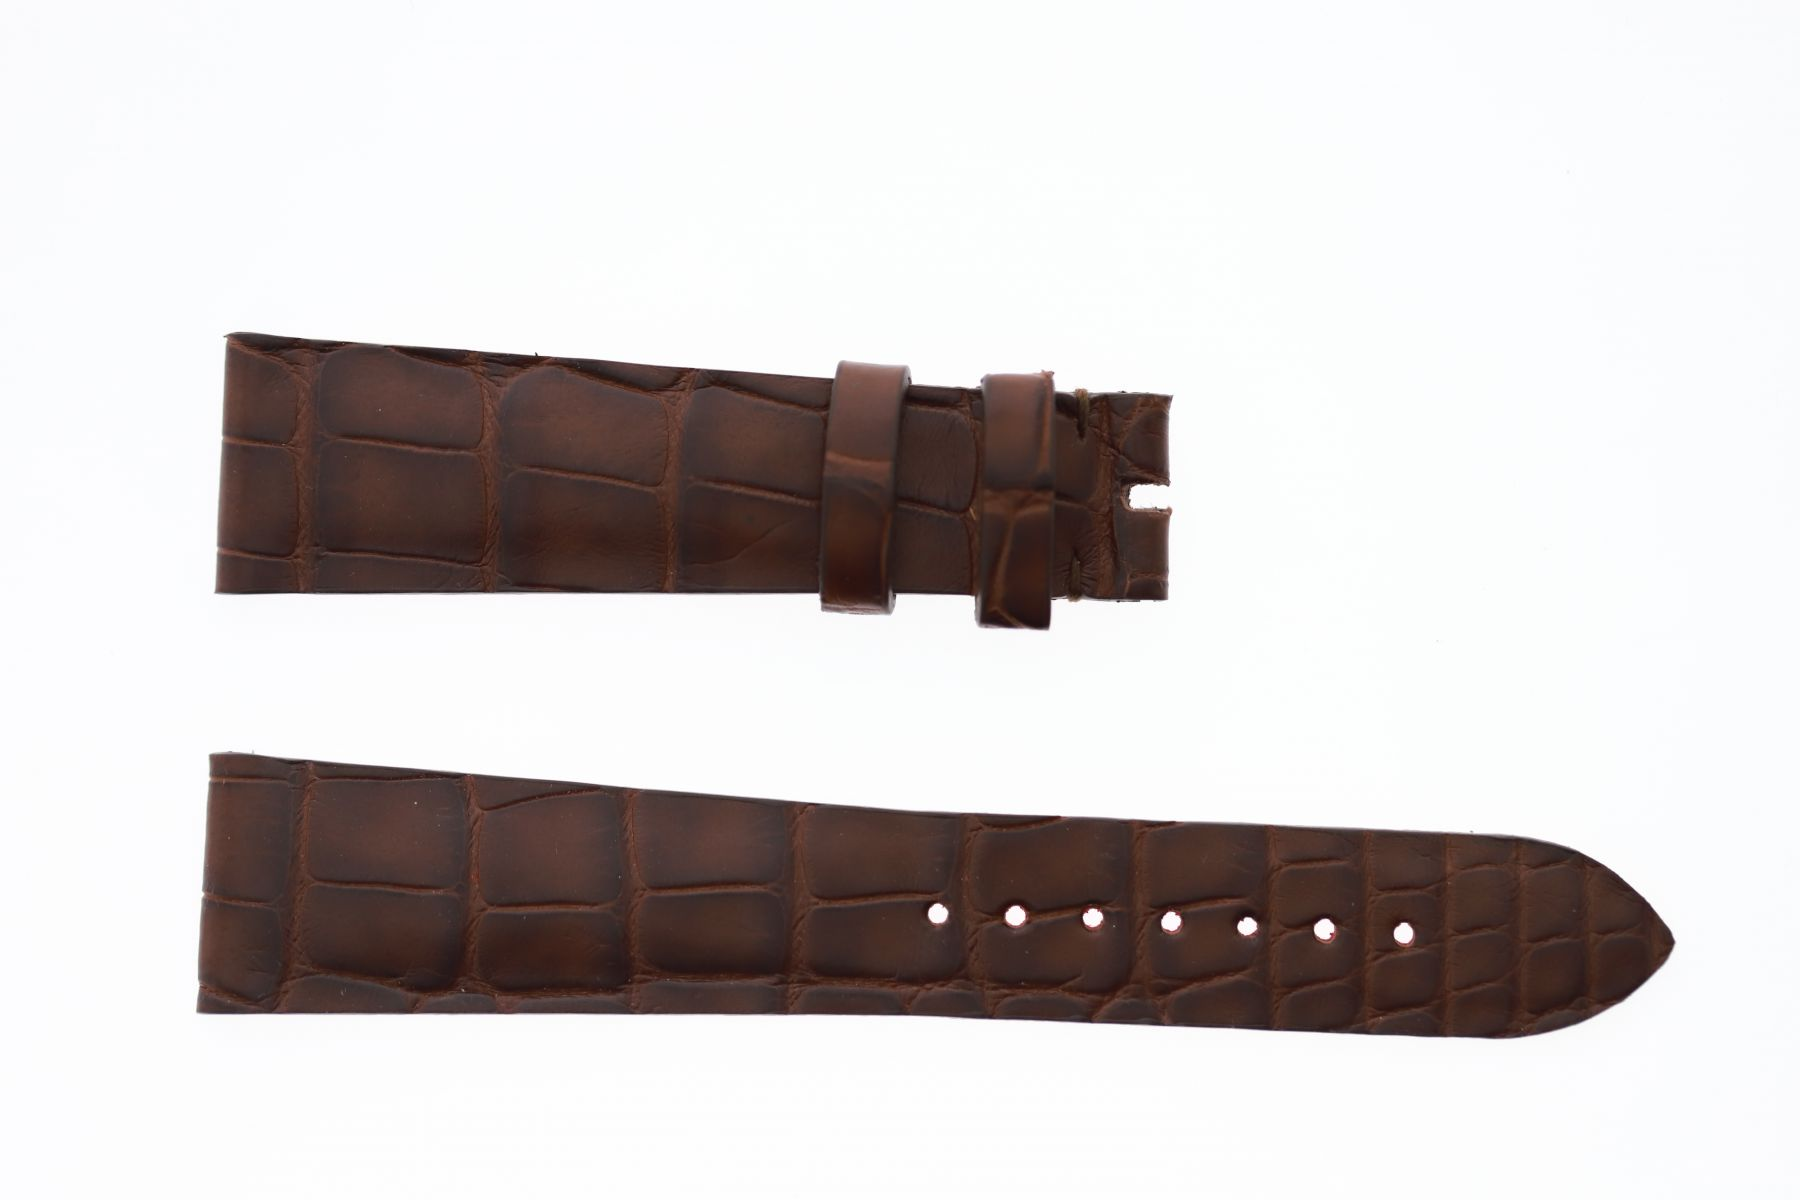 Brown Hydro Alligator leather strap 20mm Rolex Oyster, Patek Philippe style